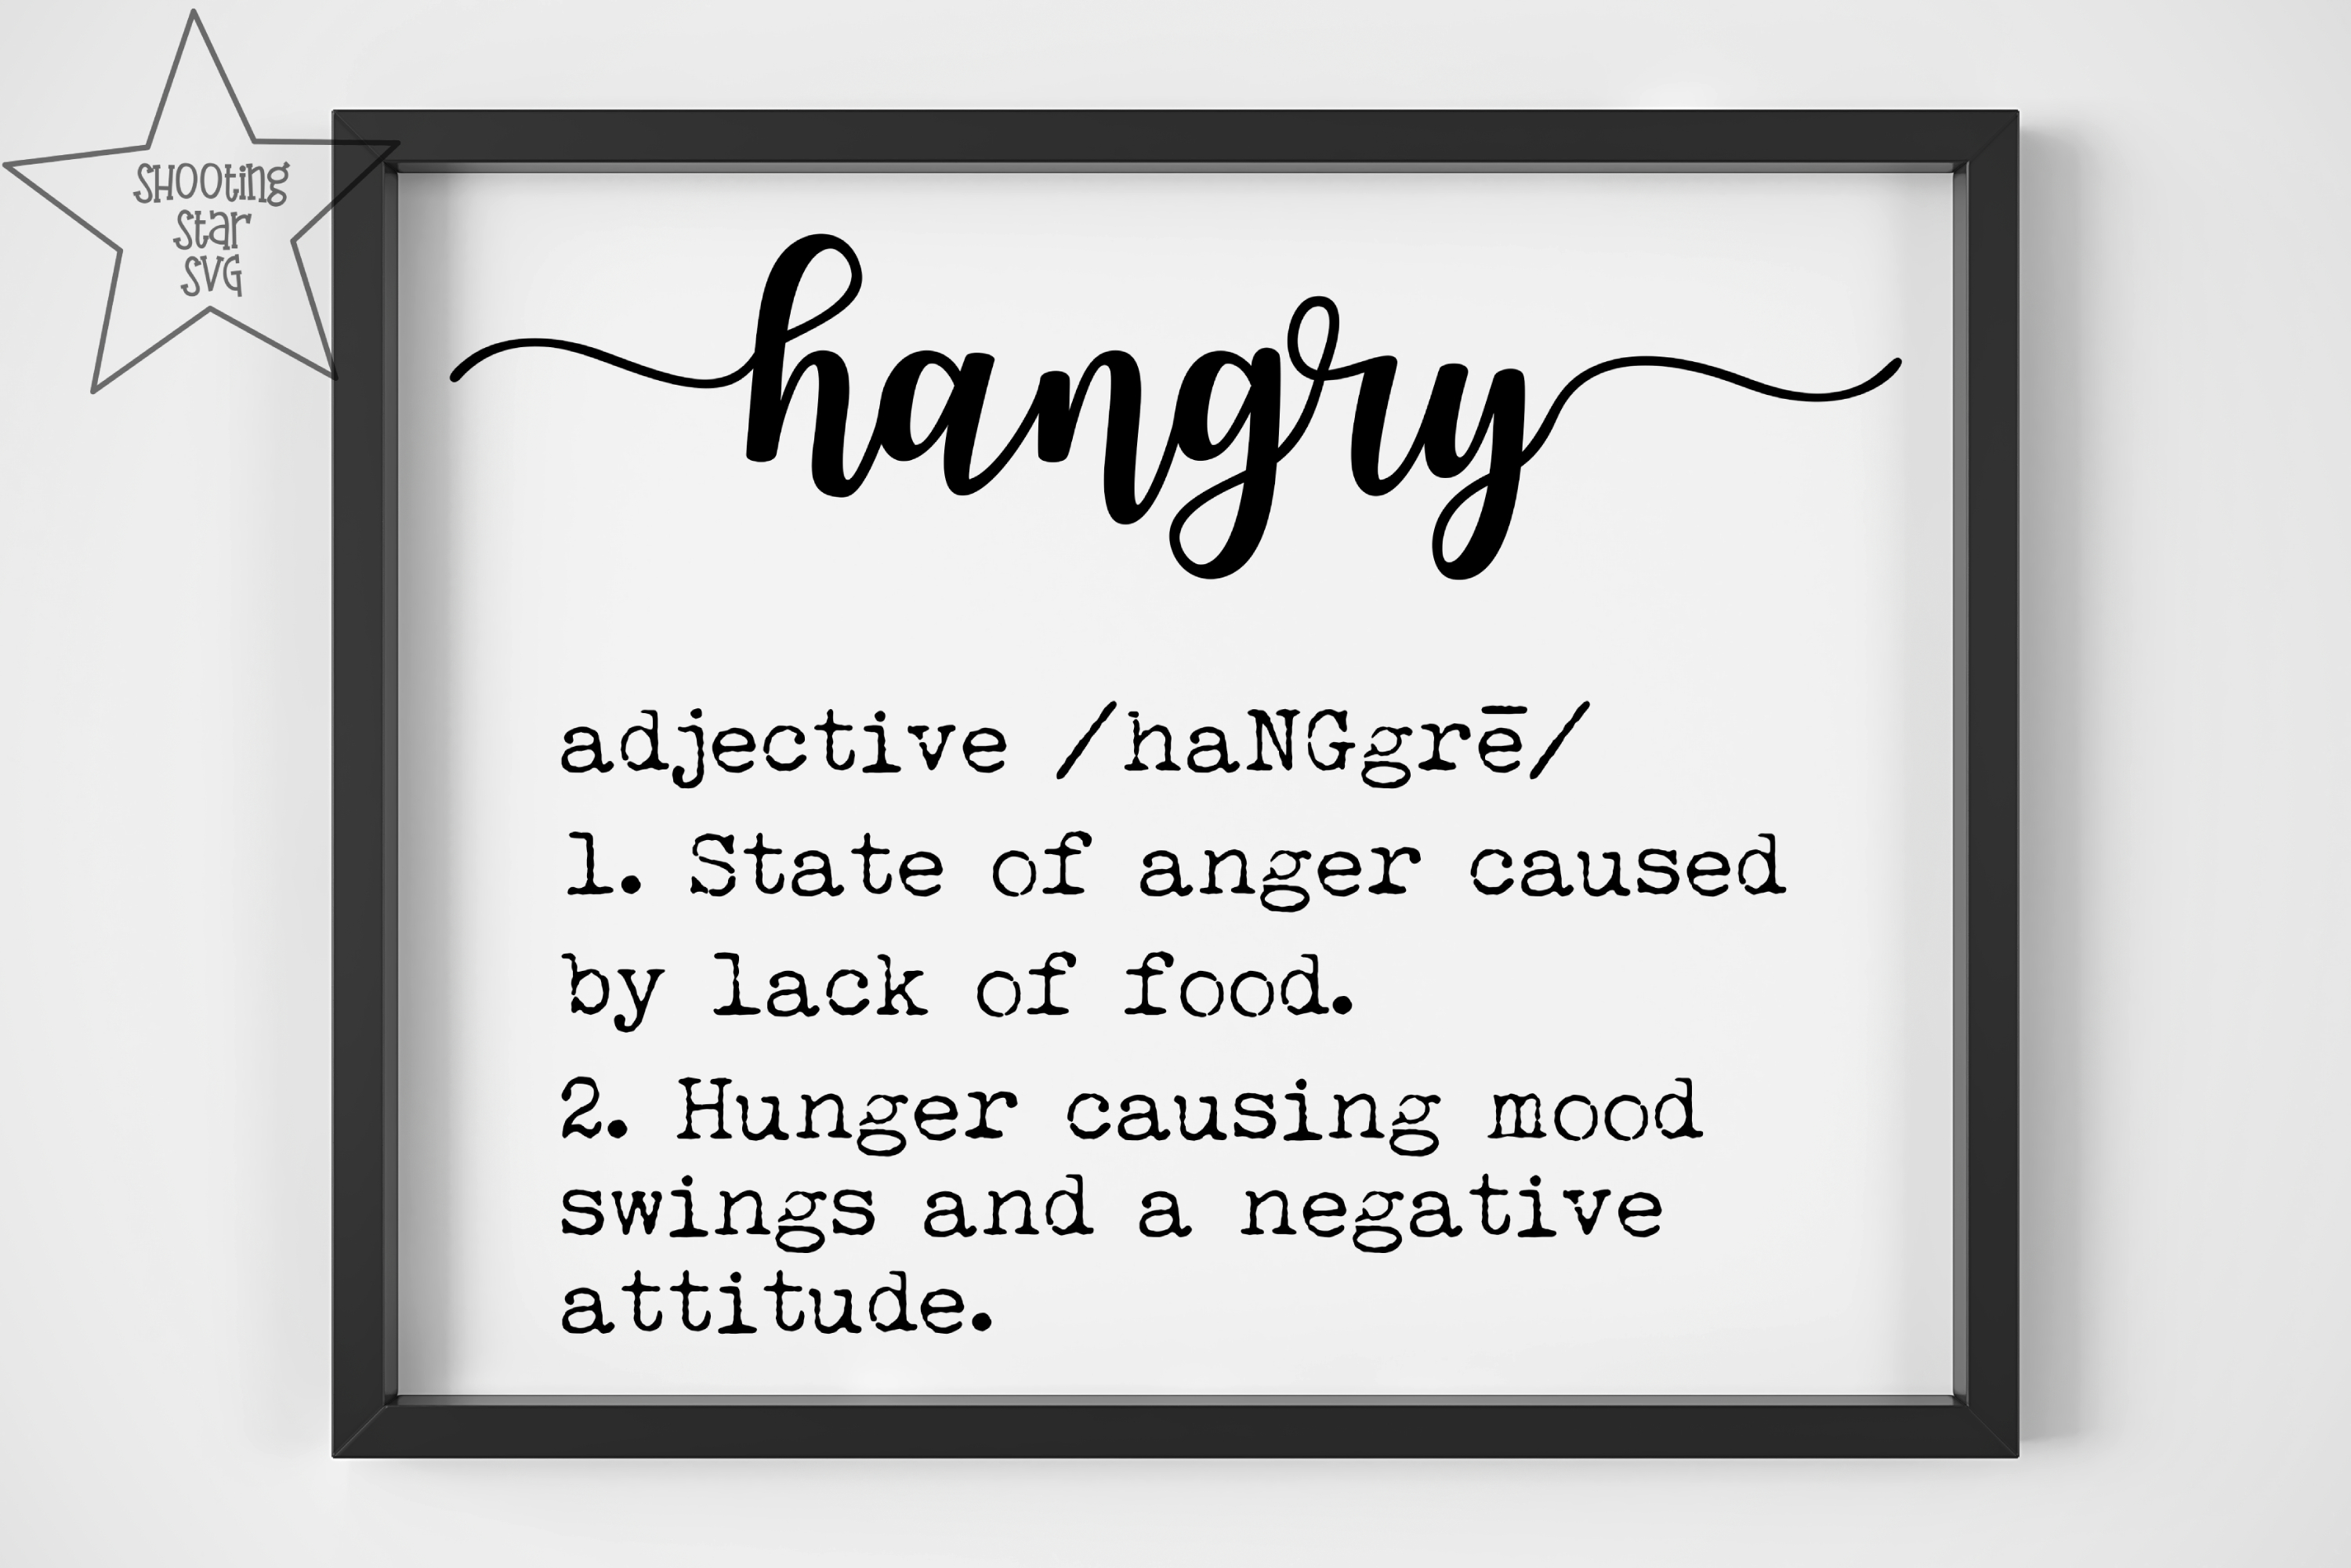 Hangry Definition SVG - Funny Definition SVG example image 2